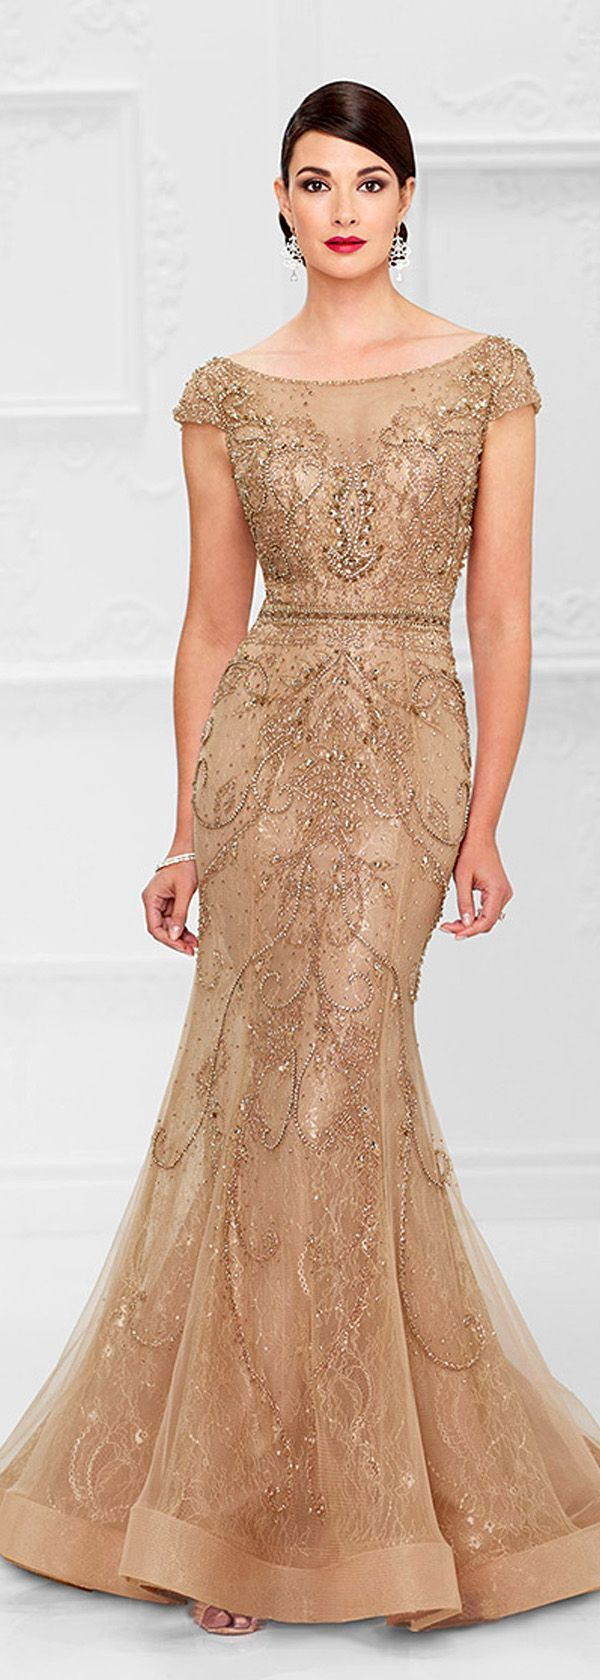 Wedding dresses for 2nd marriage  Image result for wedding dresses for second marriage over